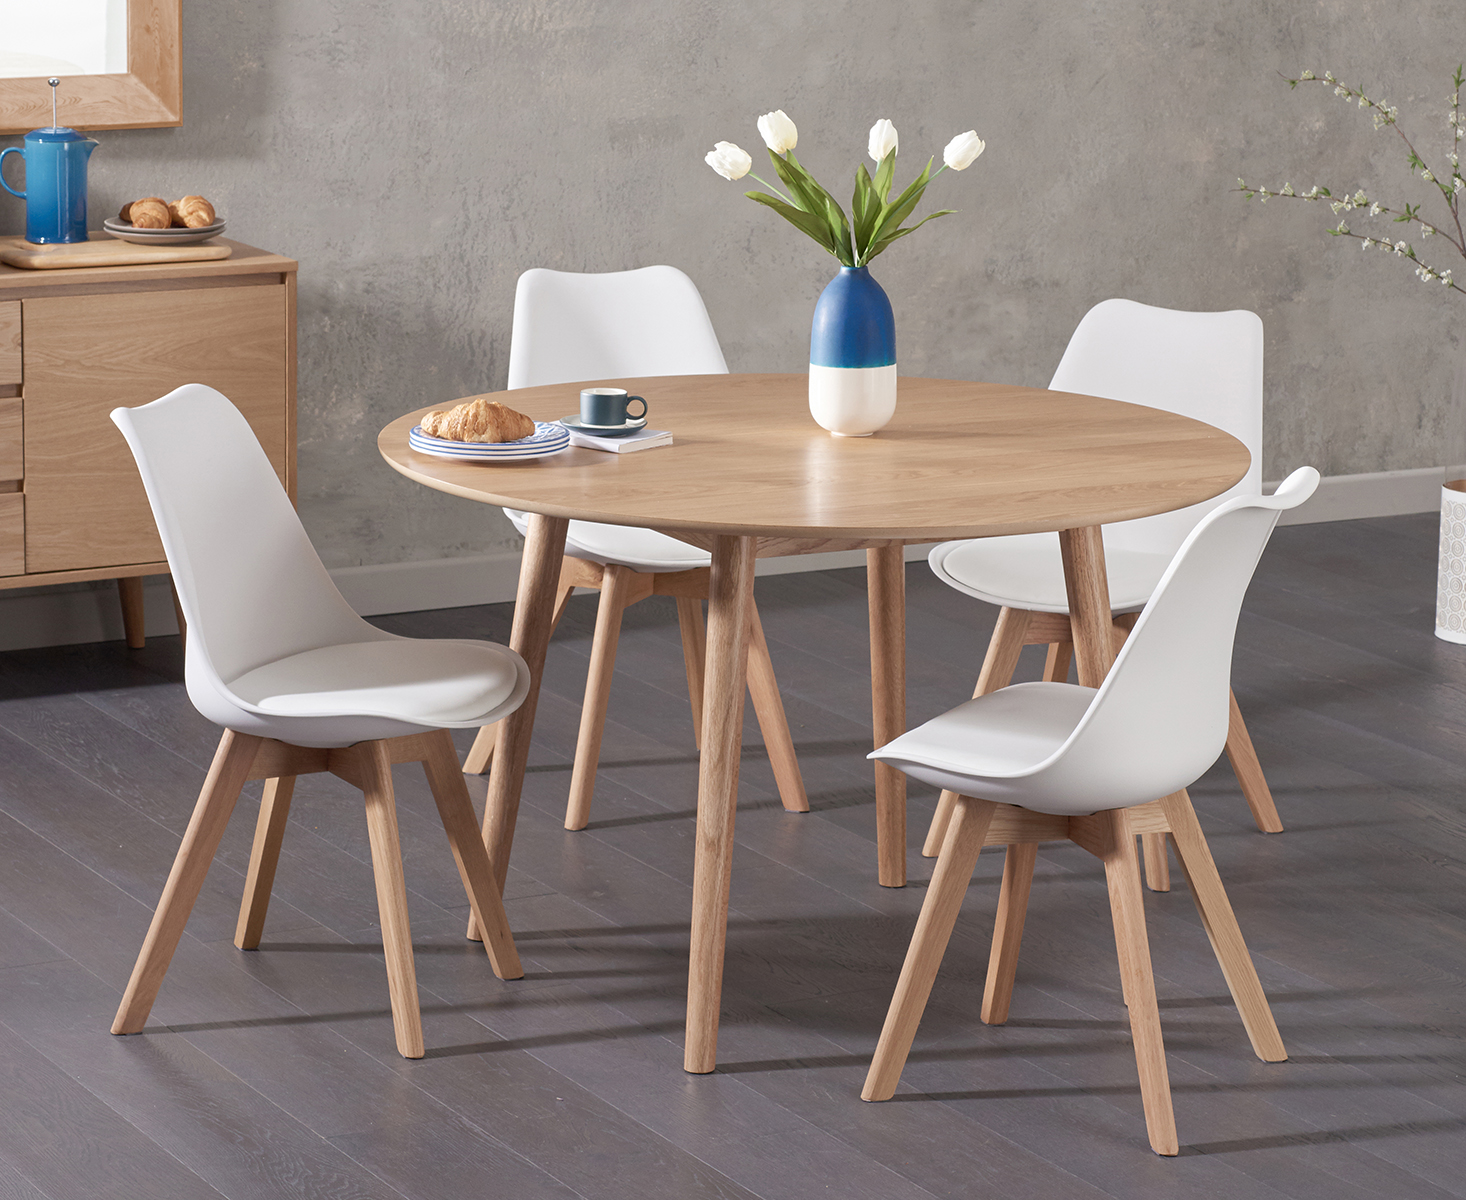 An Easy Way To Add Scandinavian Inspired Style To Your Home The Nordic 120cm Round Oak Dining Table With Duke Faux Leather Chairs Combines Good Looks With Practicality To Create A Set Thata S